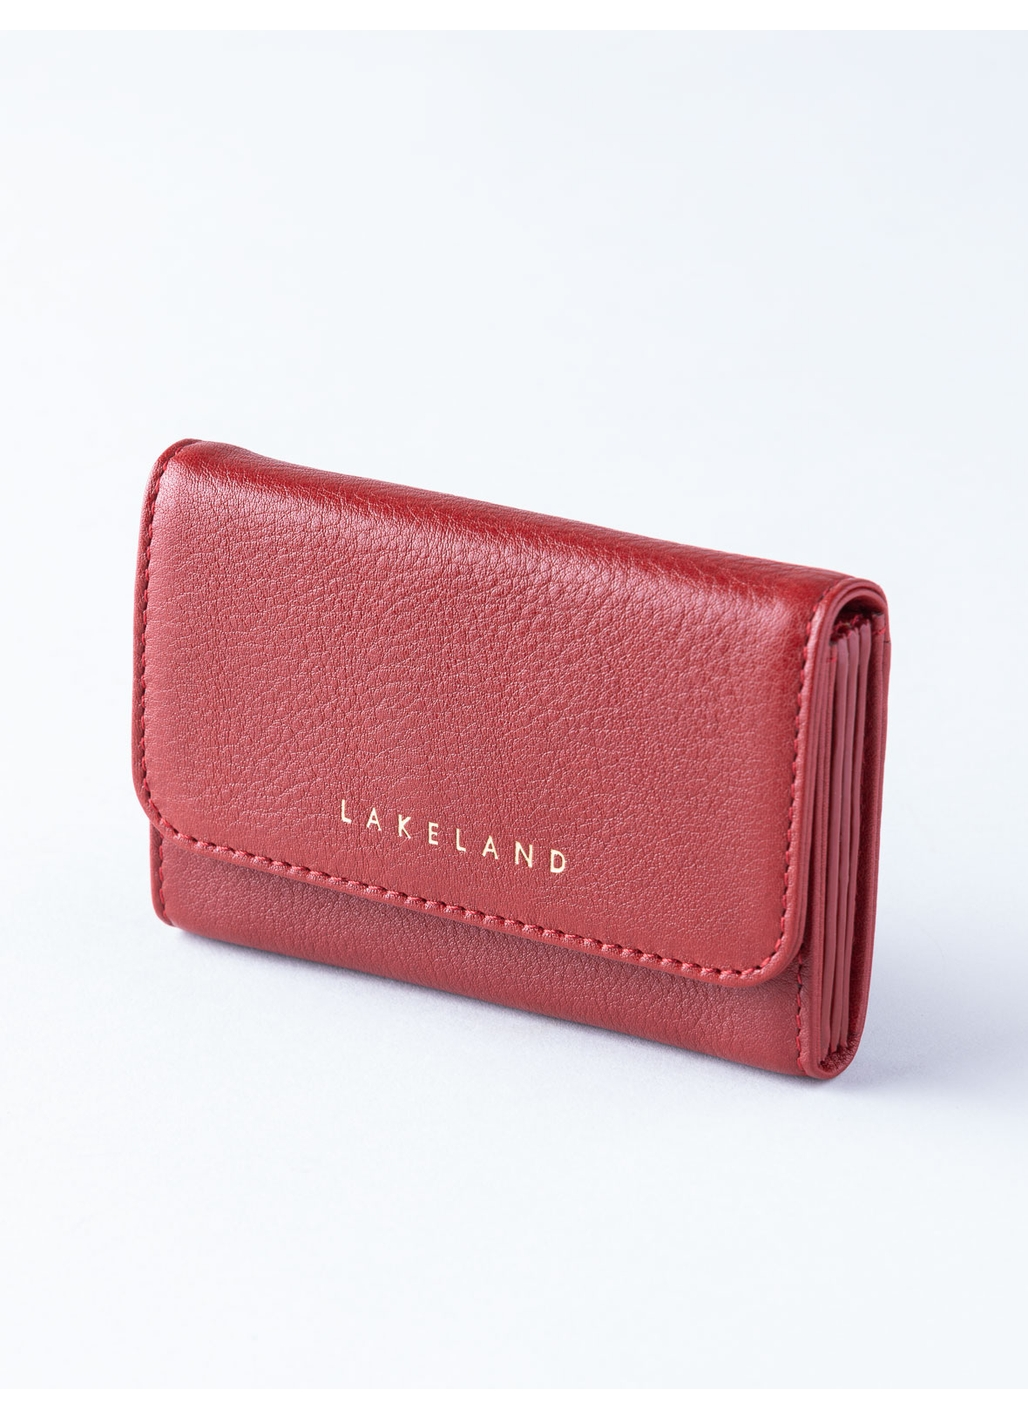 Wray Leather Fan Cardholder in Red